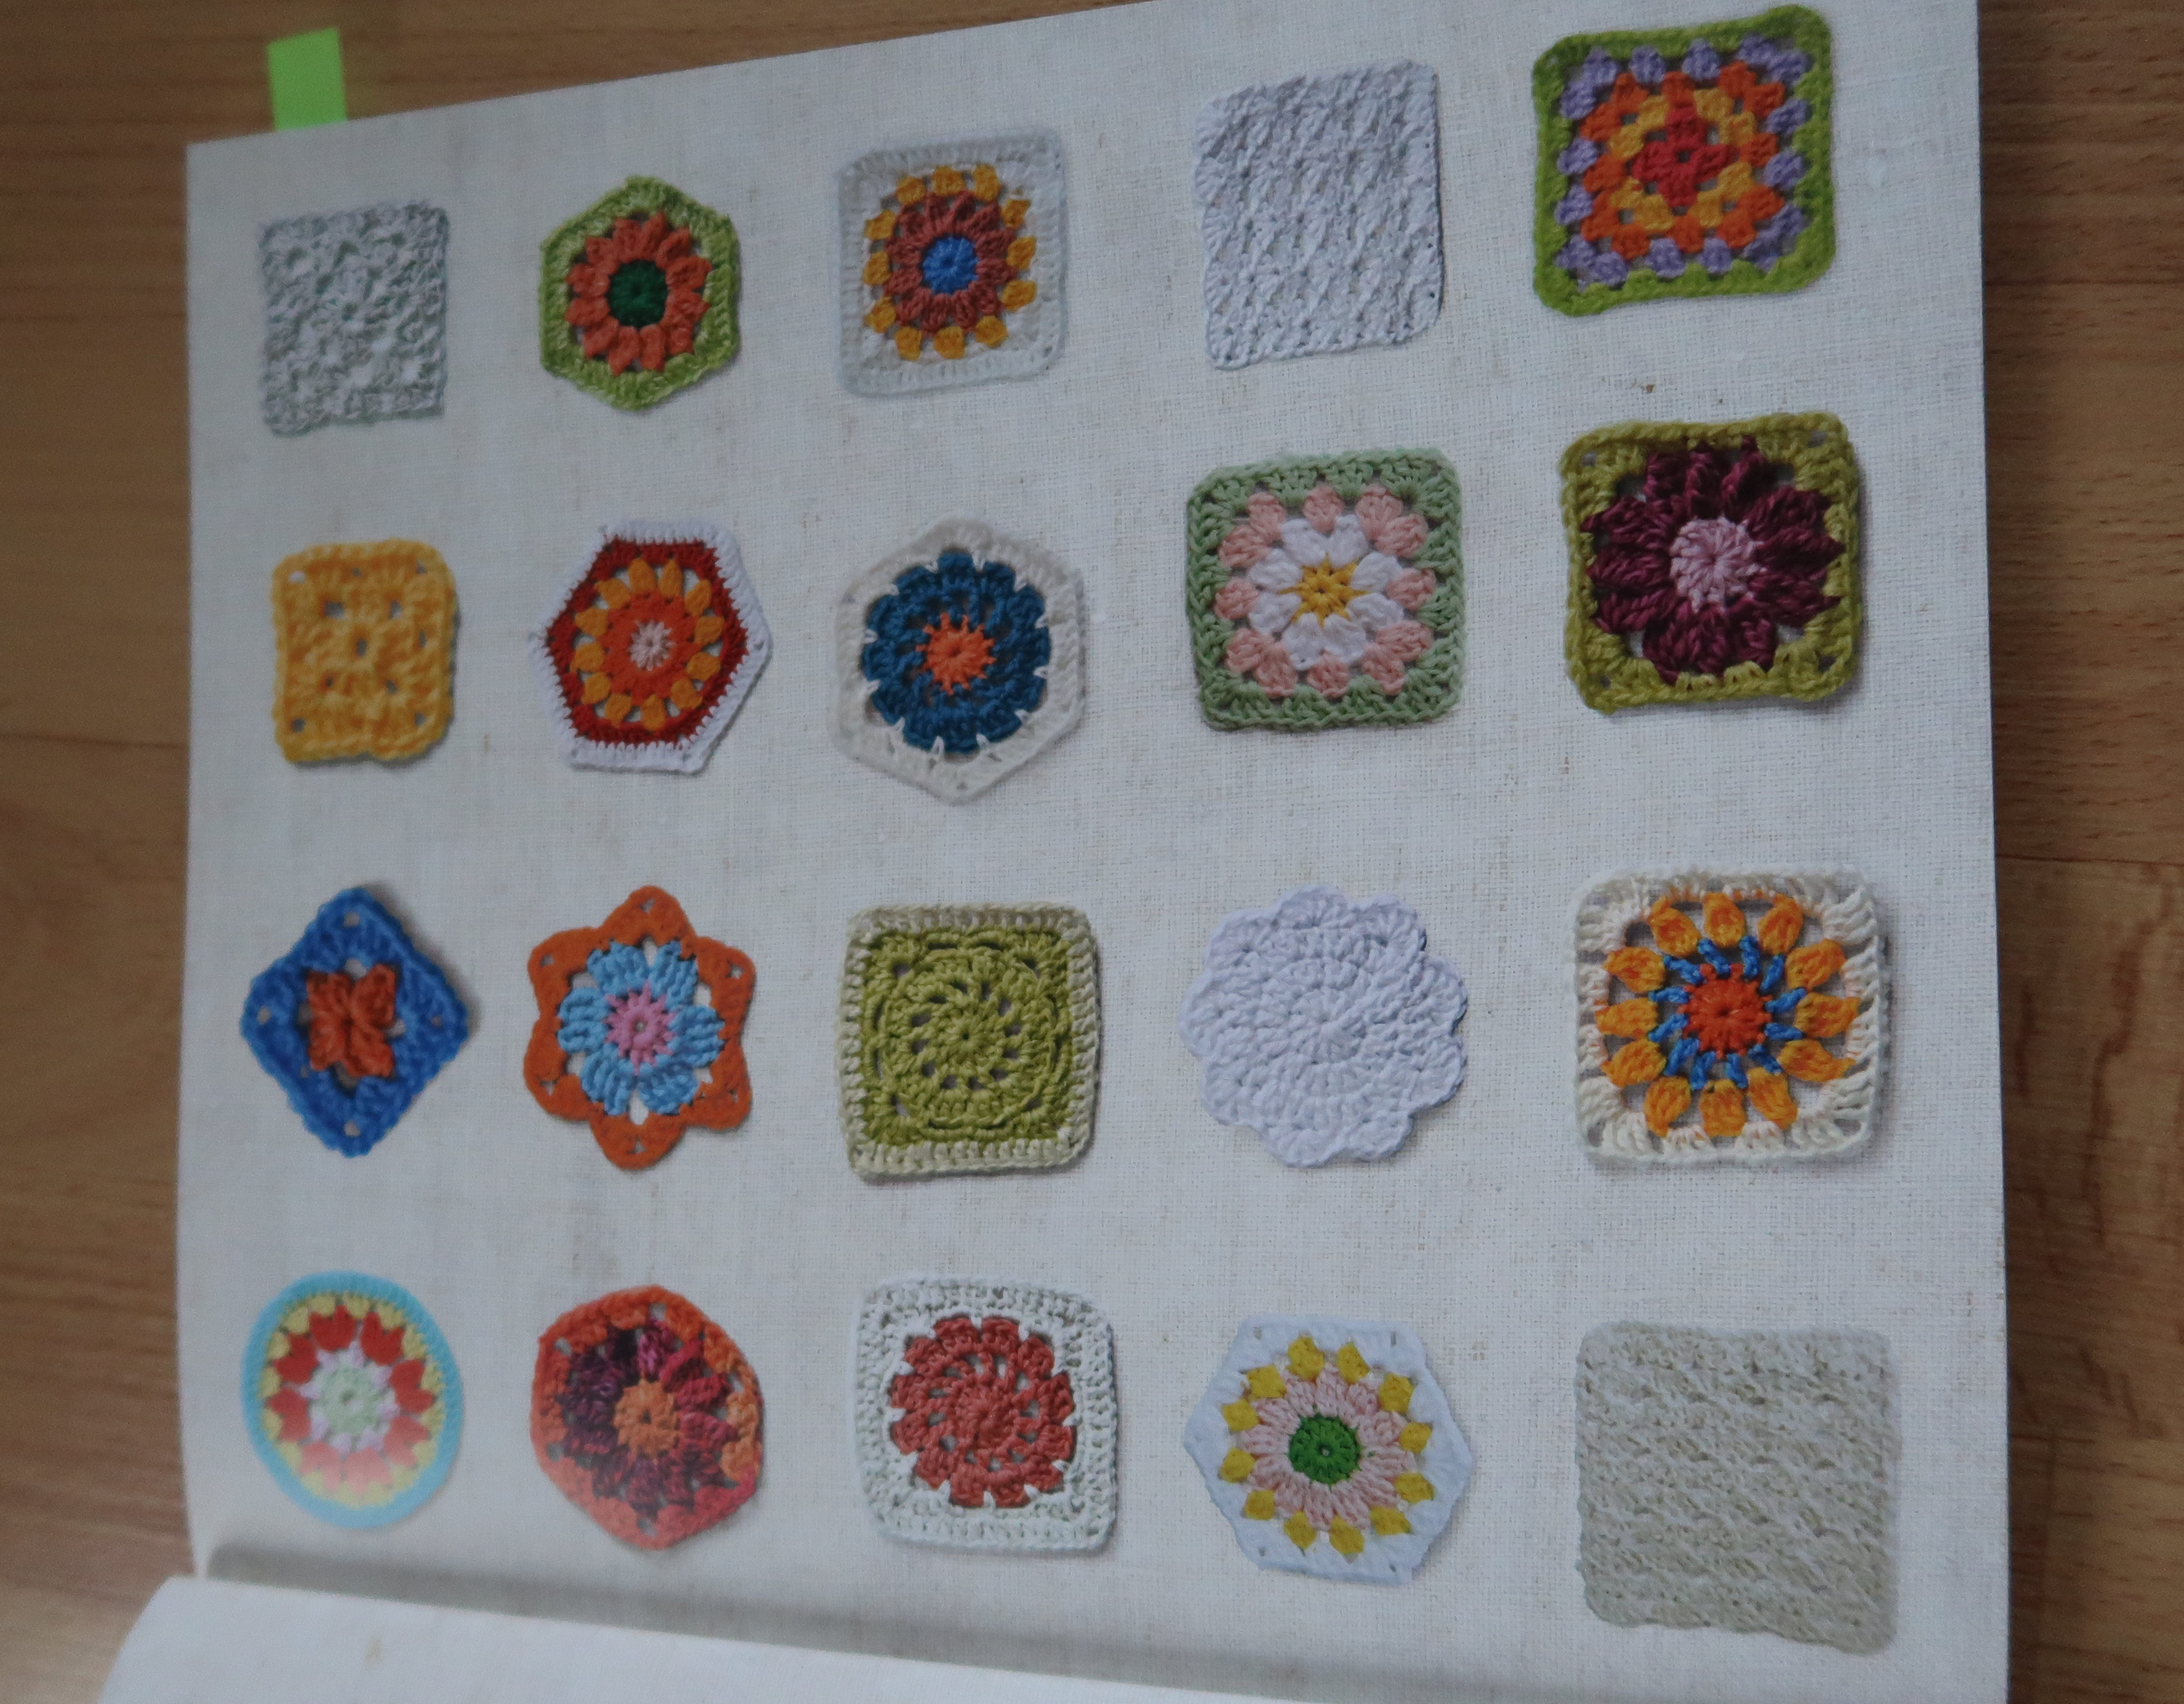 Buch-Review: Granny Squares - MissKnitness